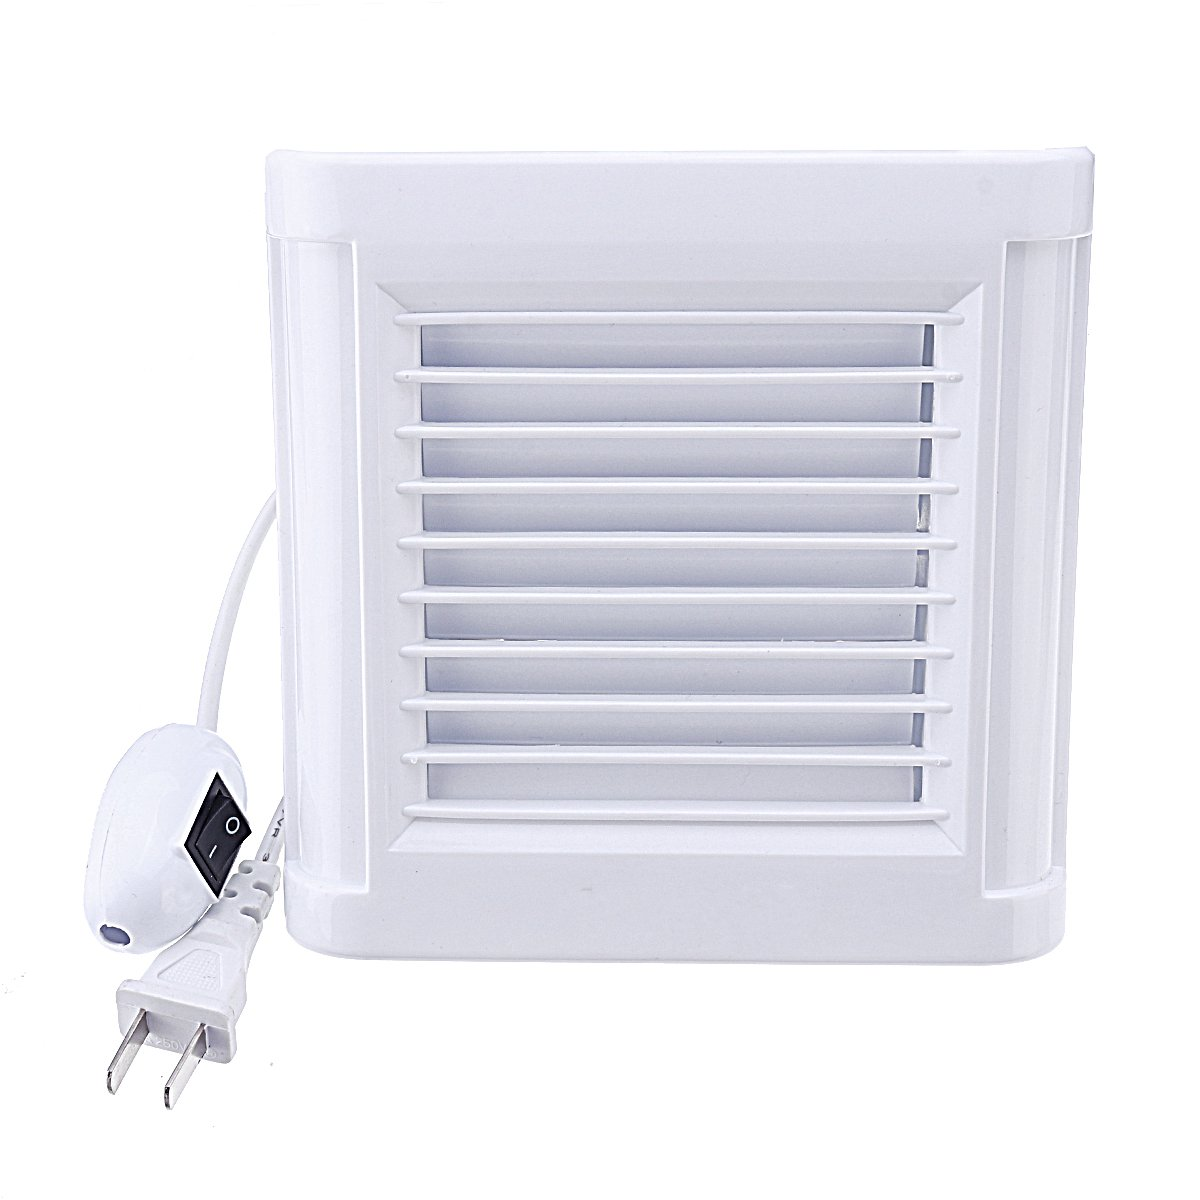 4/6 Inch Waterproof Mute Bathroom Extractor Exhaust Fan Ventilating Strong Fan For Kitchen Toilet Window Ventilation Fans 220V